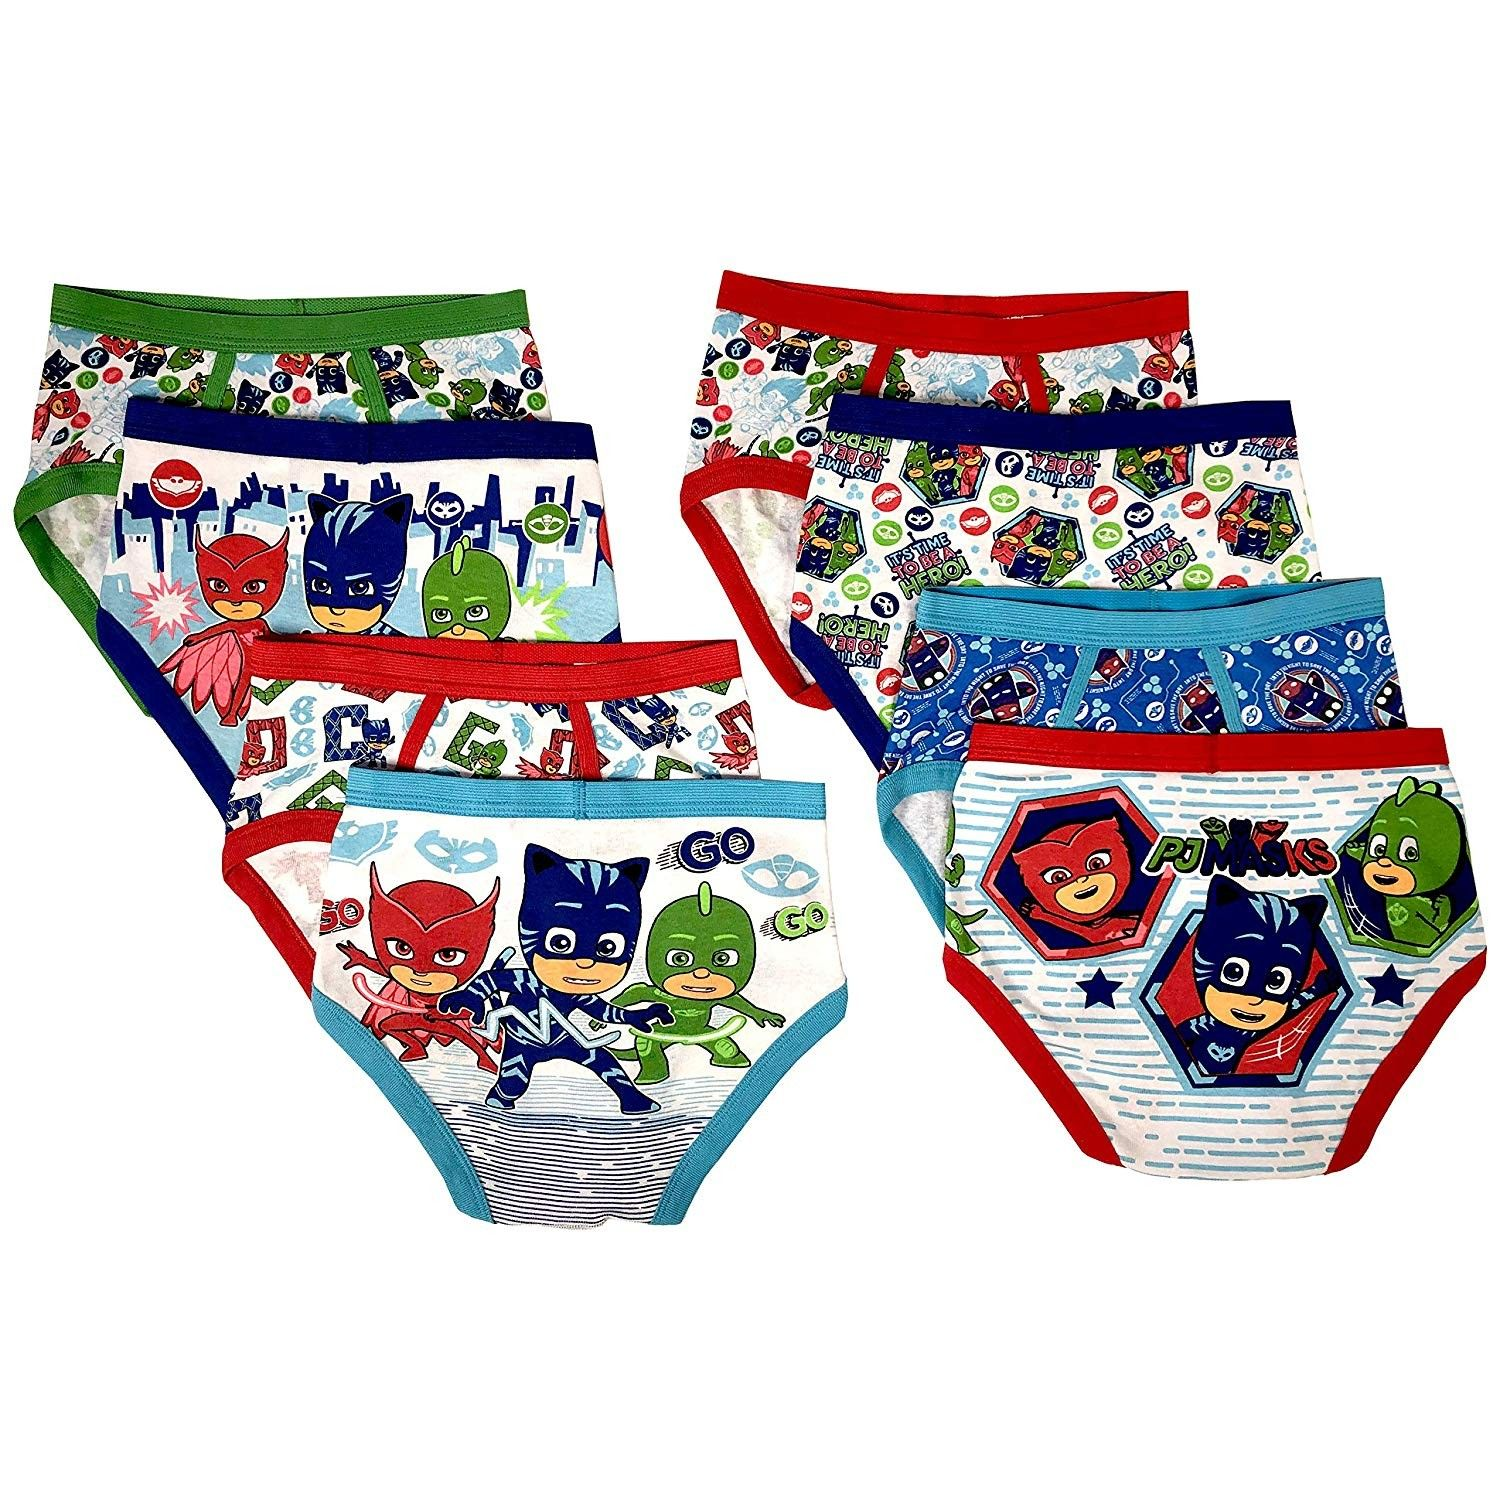 Baby Girls Knickers Toddler Panties Girls Undies 6 Pack Little Girl Underwear Cotton Fit Age 1-7